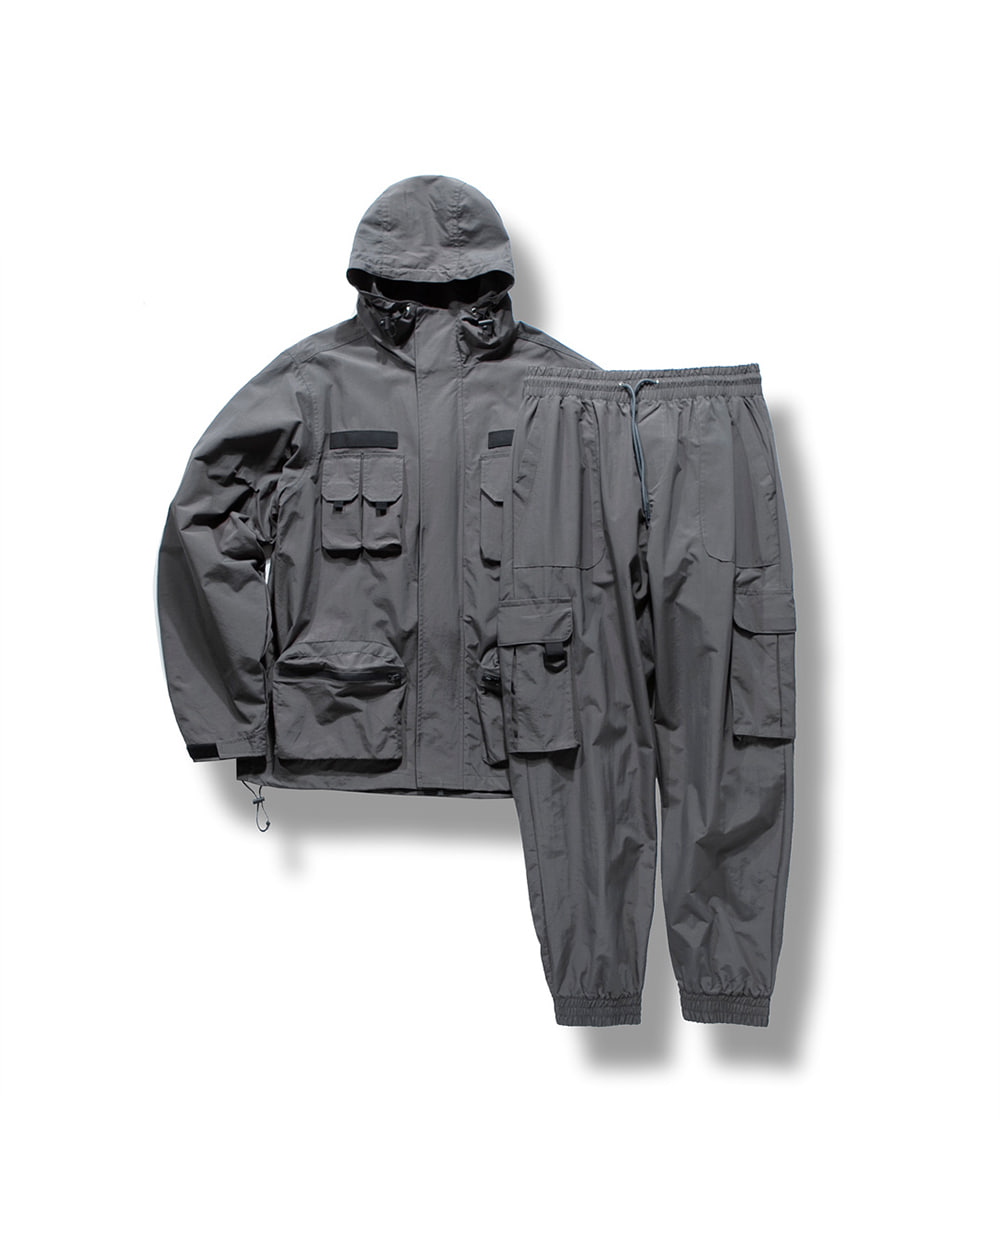 (VLADIMIR) WATERPROOF SET-UP (WIND JACKET) GRAY